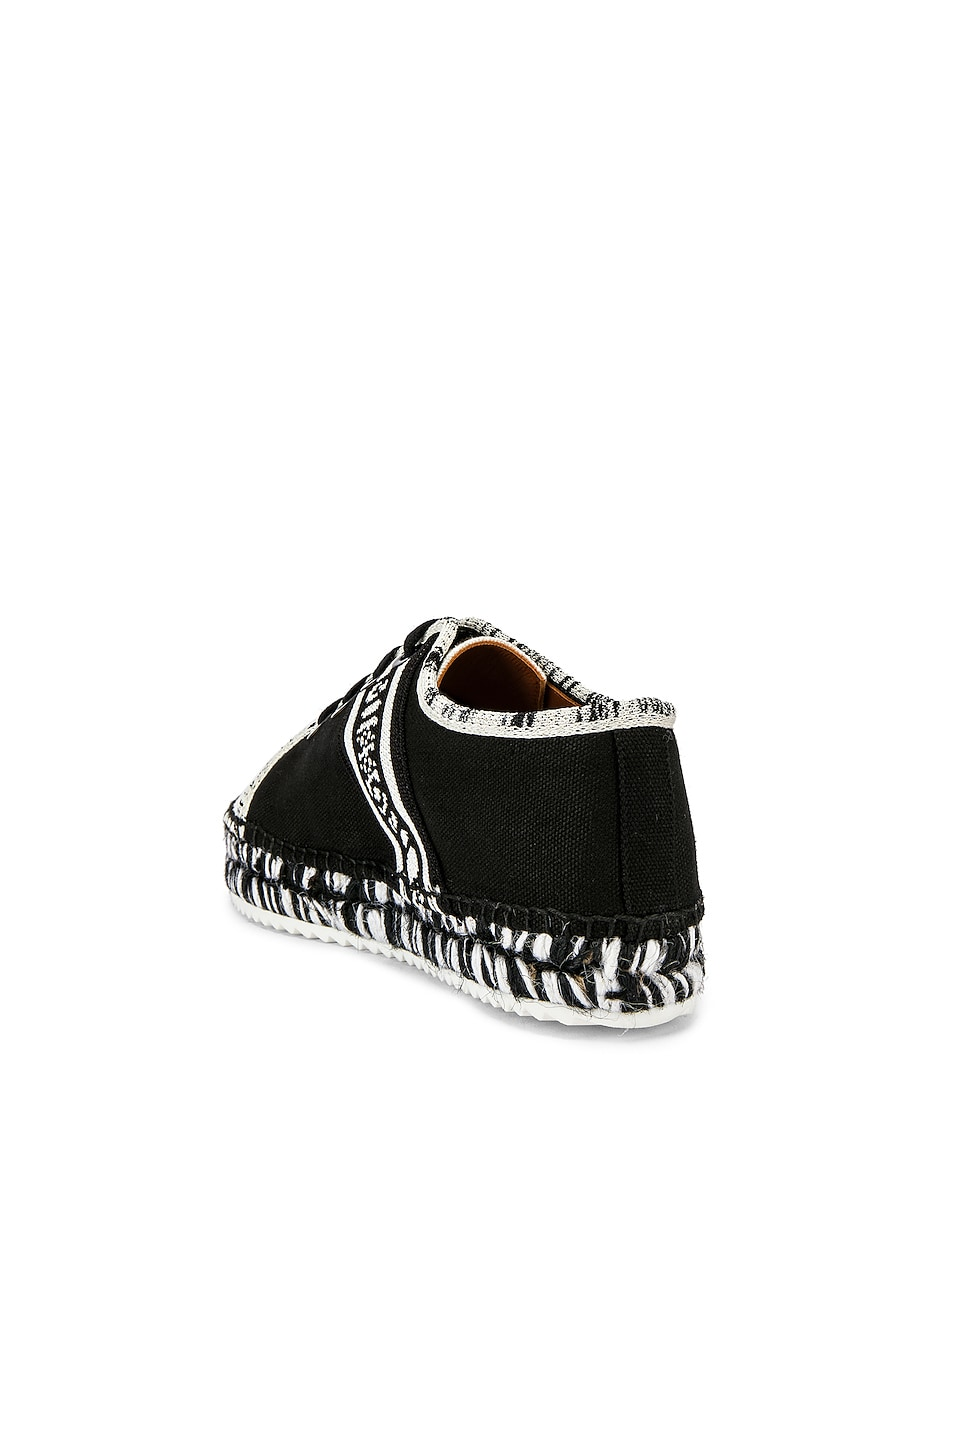 Image 3 of Castaner x MISSONI Kerri Sneaker in Black & White